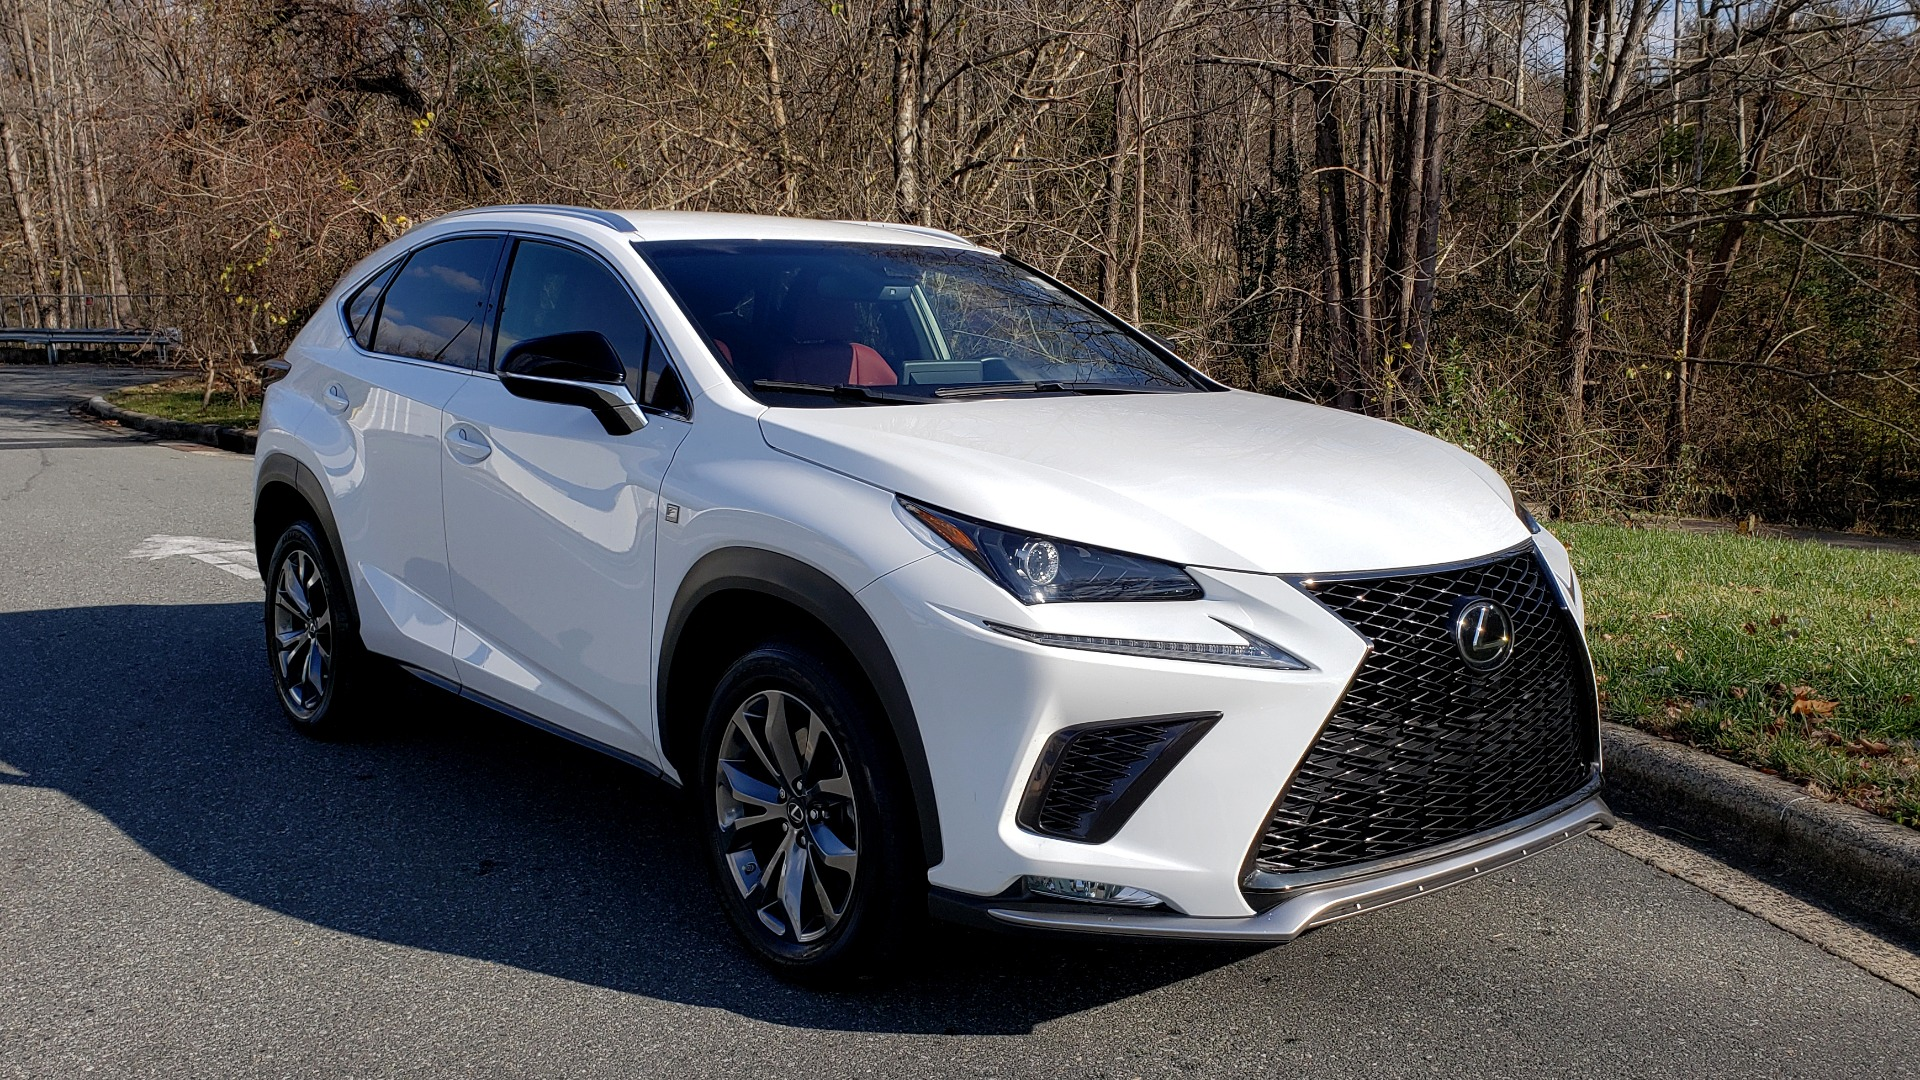 Used 2019 Lexus NX 300 F-SPORT / 2.0L TURBO / LEATHER / 18IN WHEELS / REARVIEW for sale $31,195 at Formula Imports in Charlotte NC 28227 4